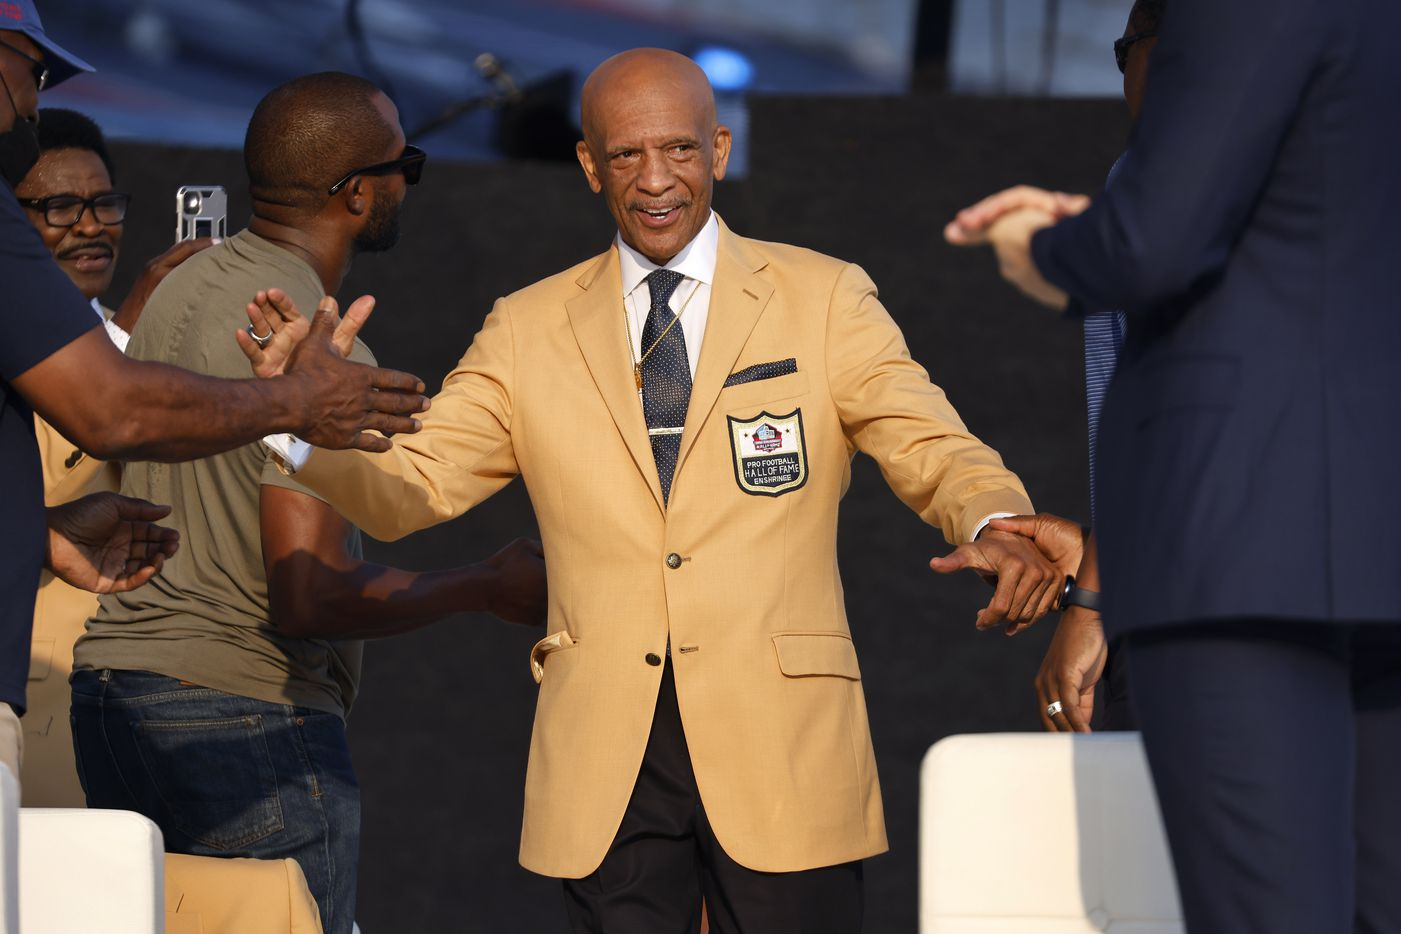 Pro Football Hall of Fame inductee Drew Pearson of the Dallas Cowboys is introduced and congratulated by fellow members during the Class of 2021 enshrinement ceremony at Tom Benson Hall of Fame Stadium in Canton, Ohio, Sunday, August 8, 2021. (Tom Fox/The Dallas Morning News)